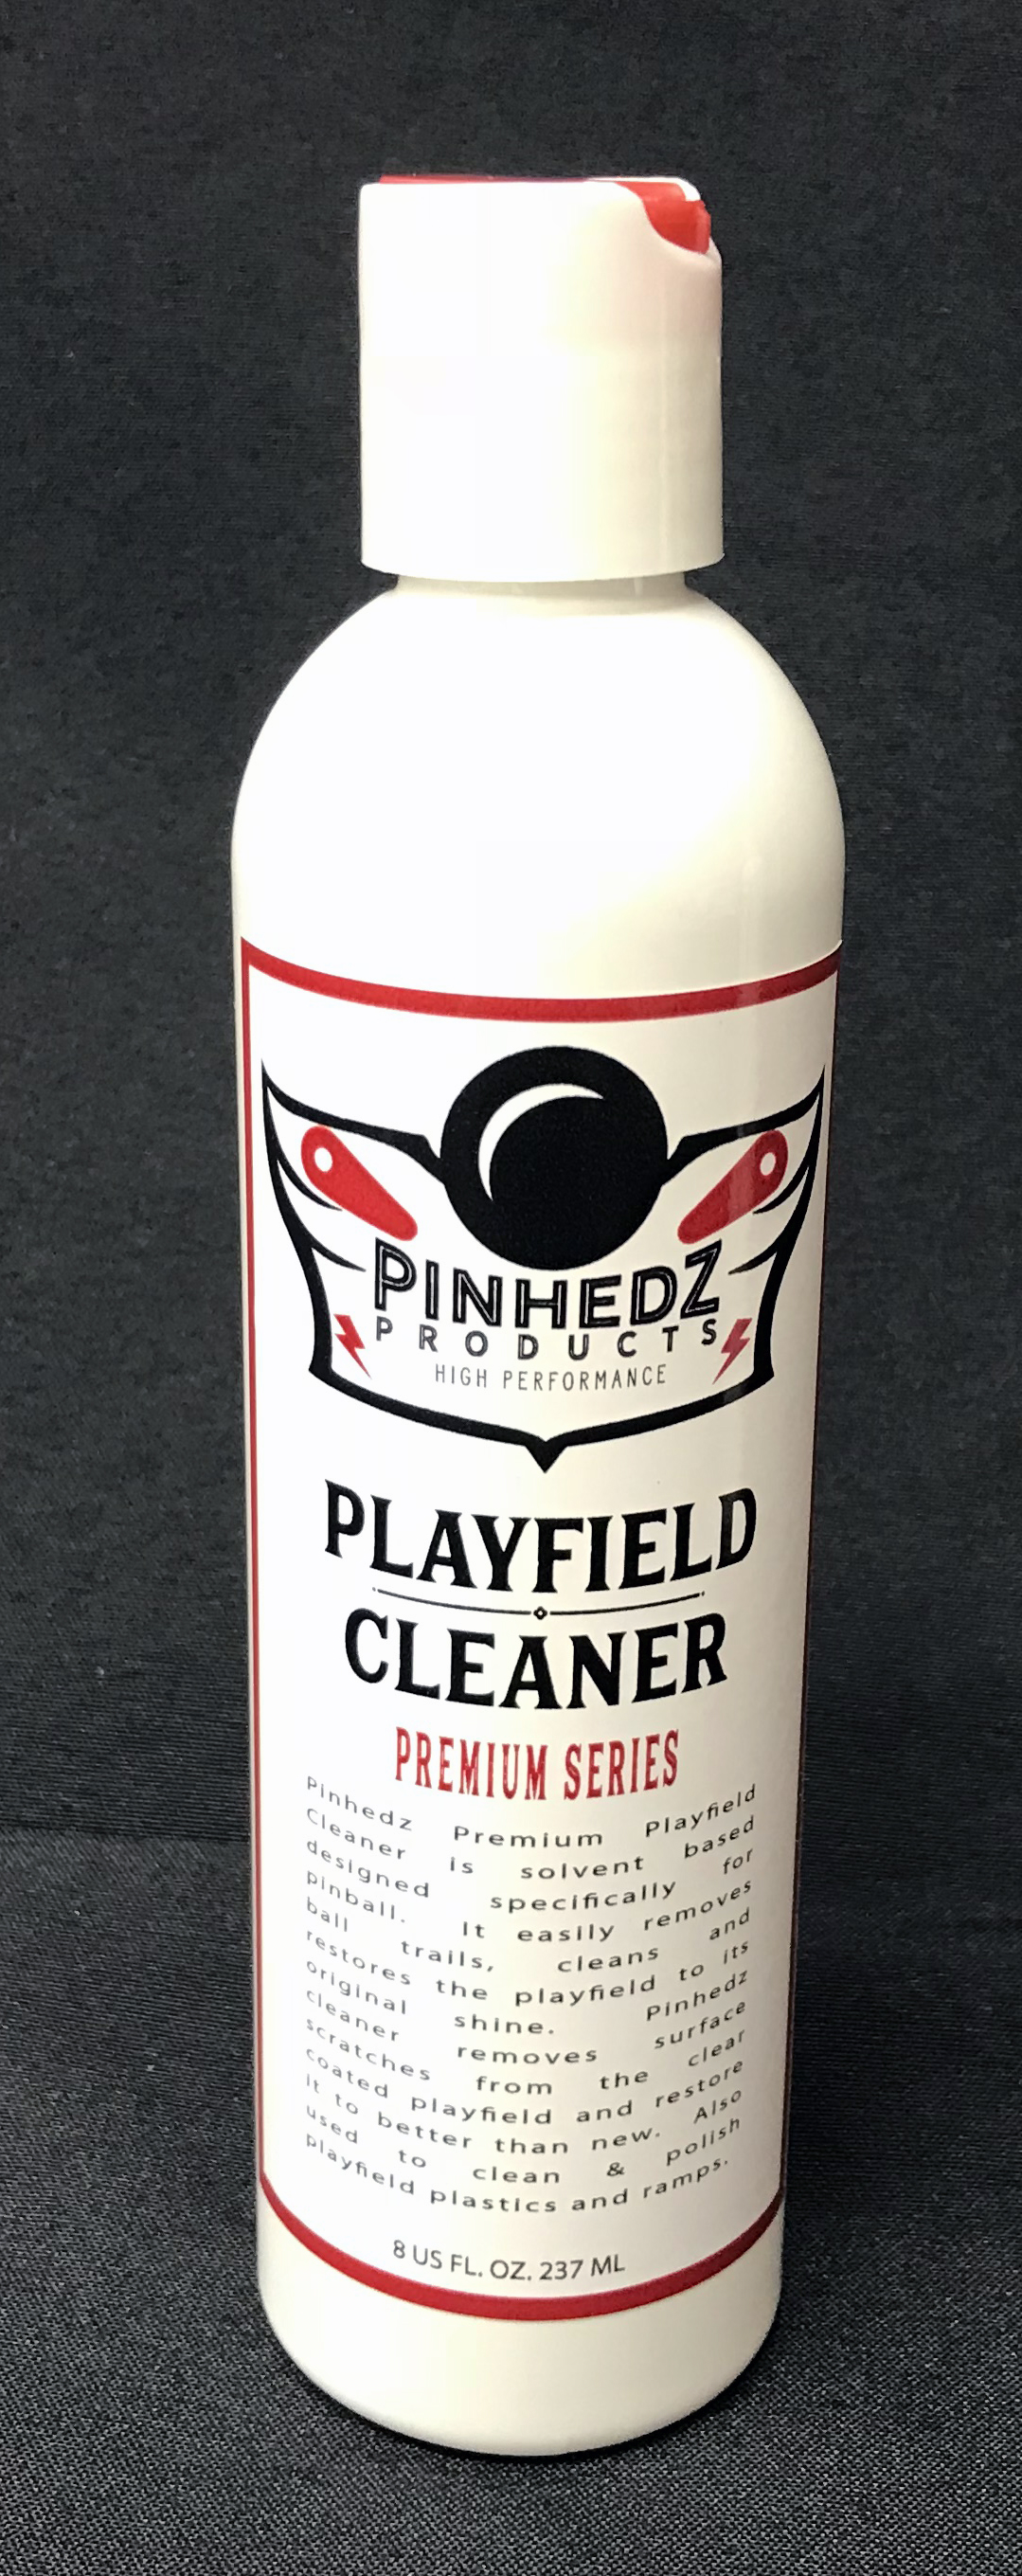 Pinhedz Playfield And Plastics Cleaner Possibly The Best